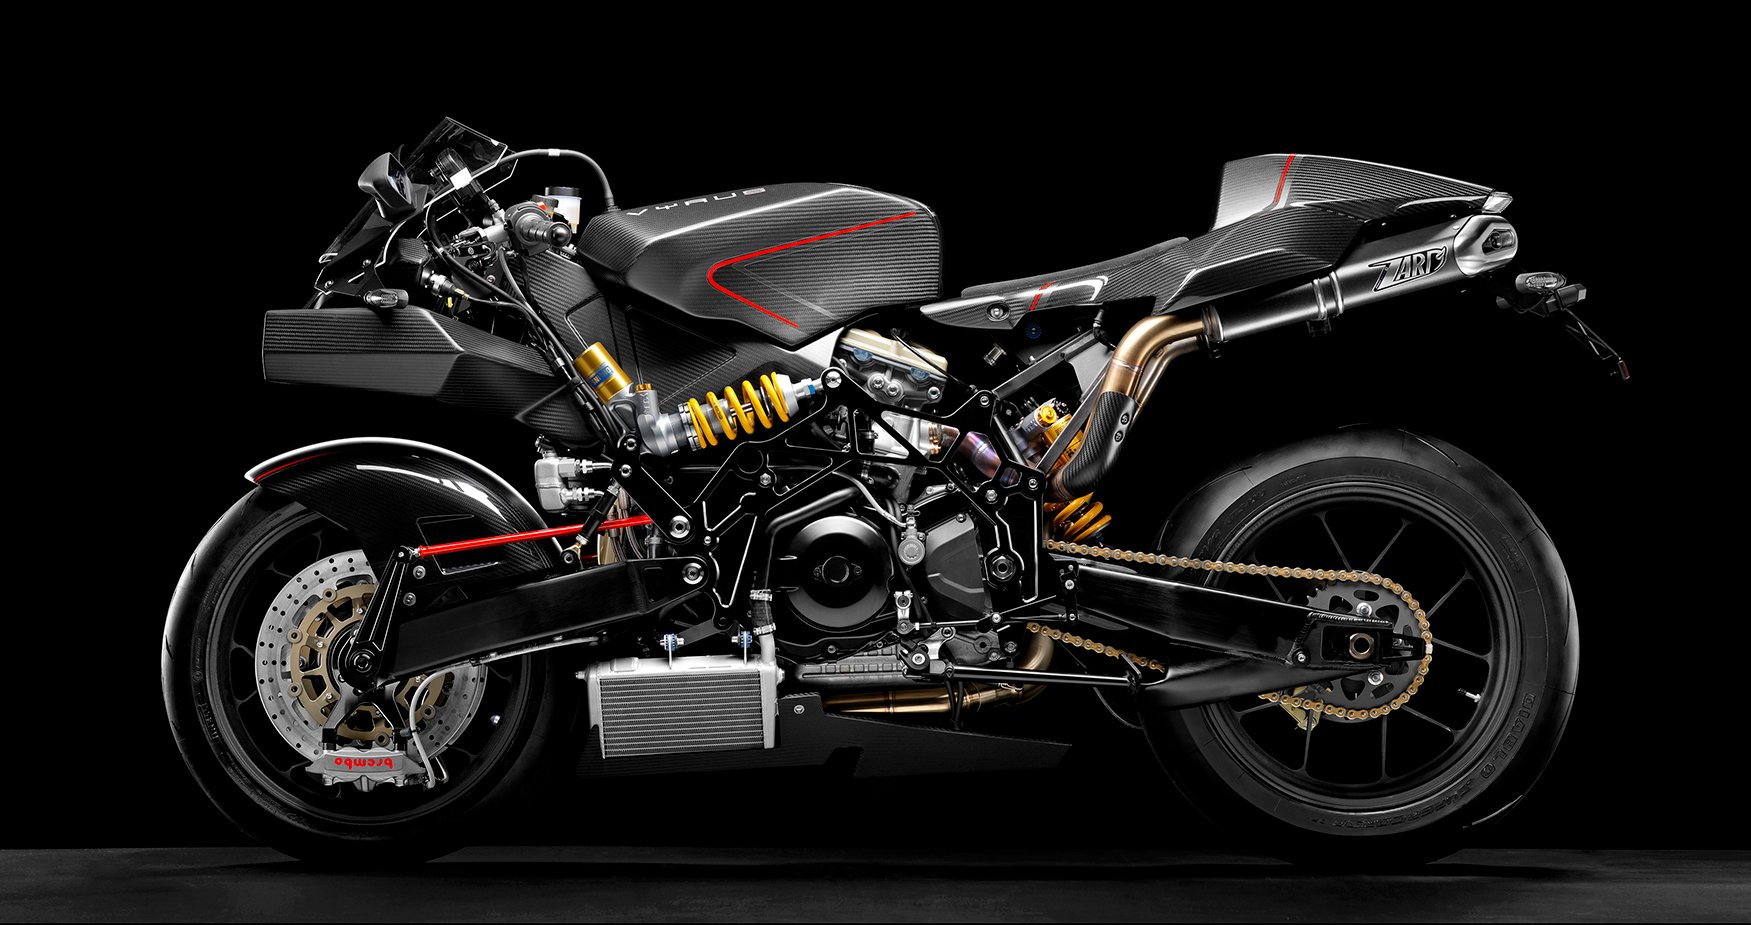 vyrus-987-c3-4v-110000_expensive-motorcycles